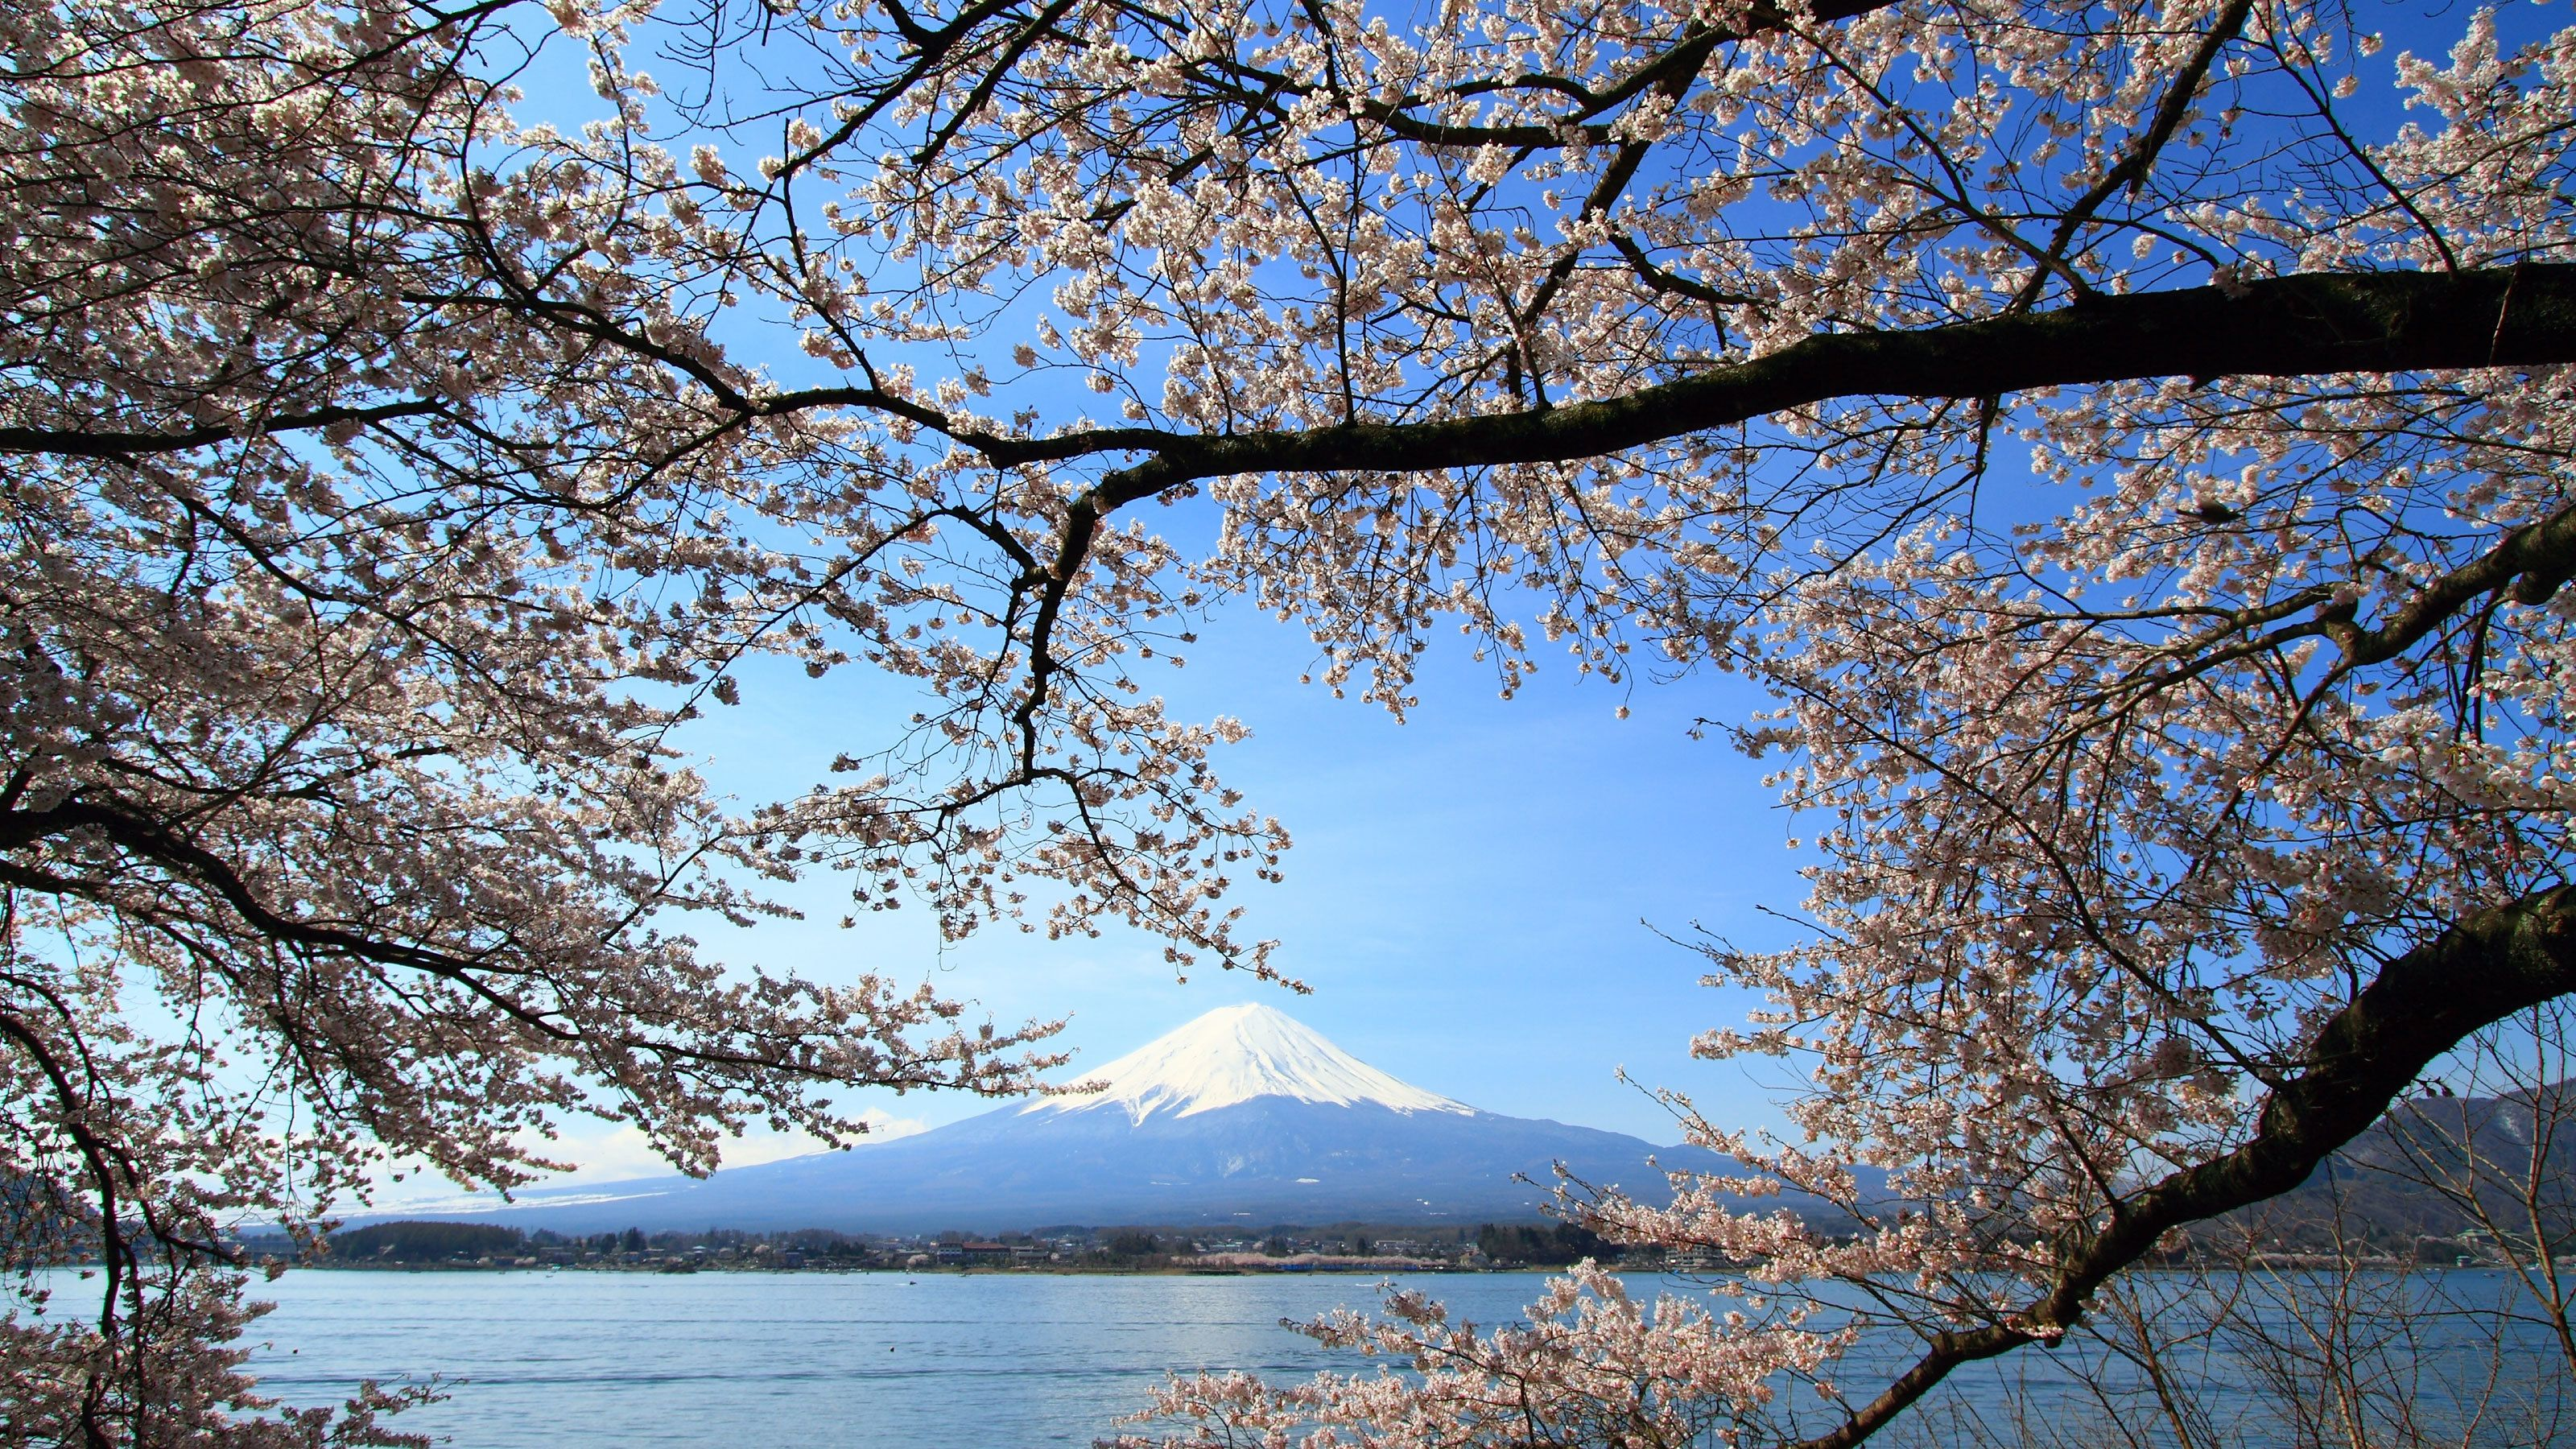 Mount Fuji Full-Day Tour with Cruise & Lunch